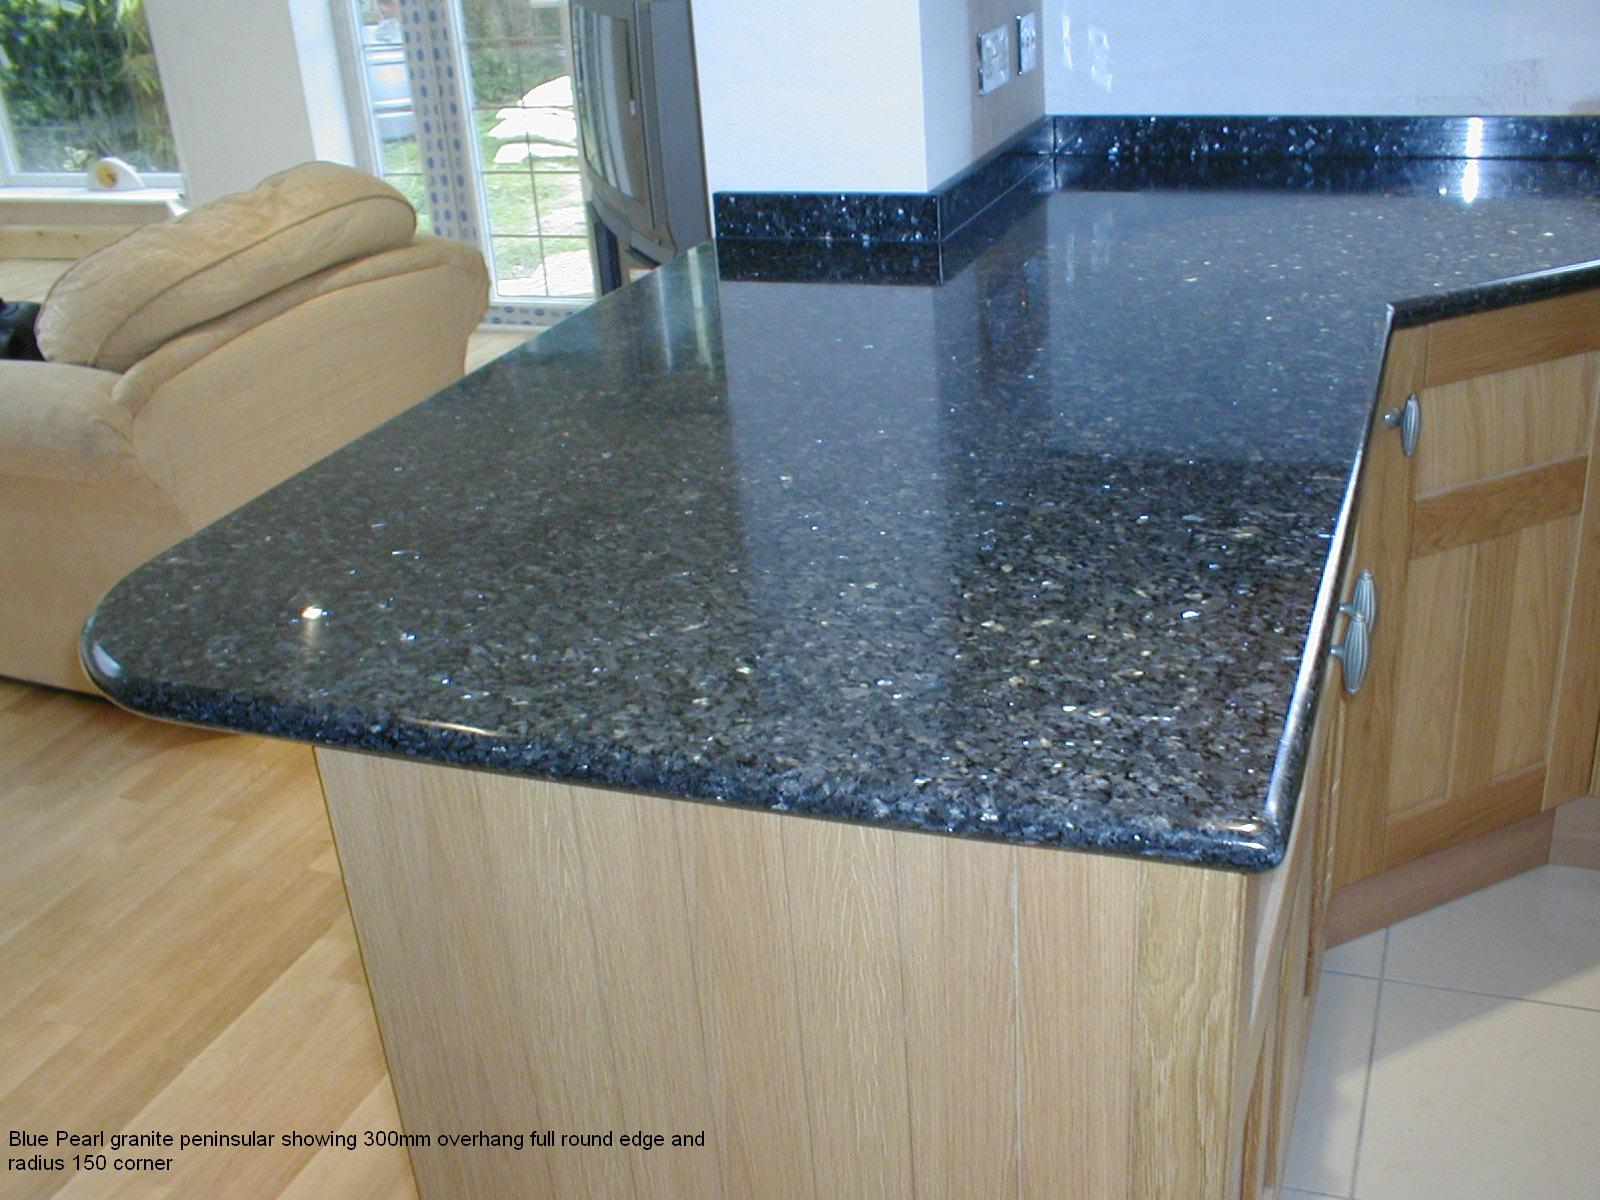 Blue Pearl Granite Peninsular Showing 300mm Overhang Full